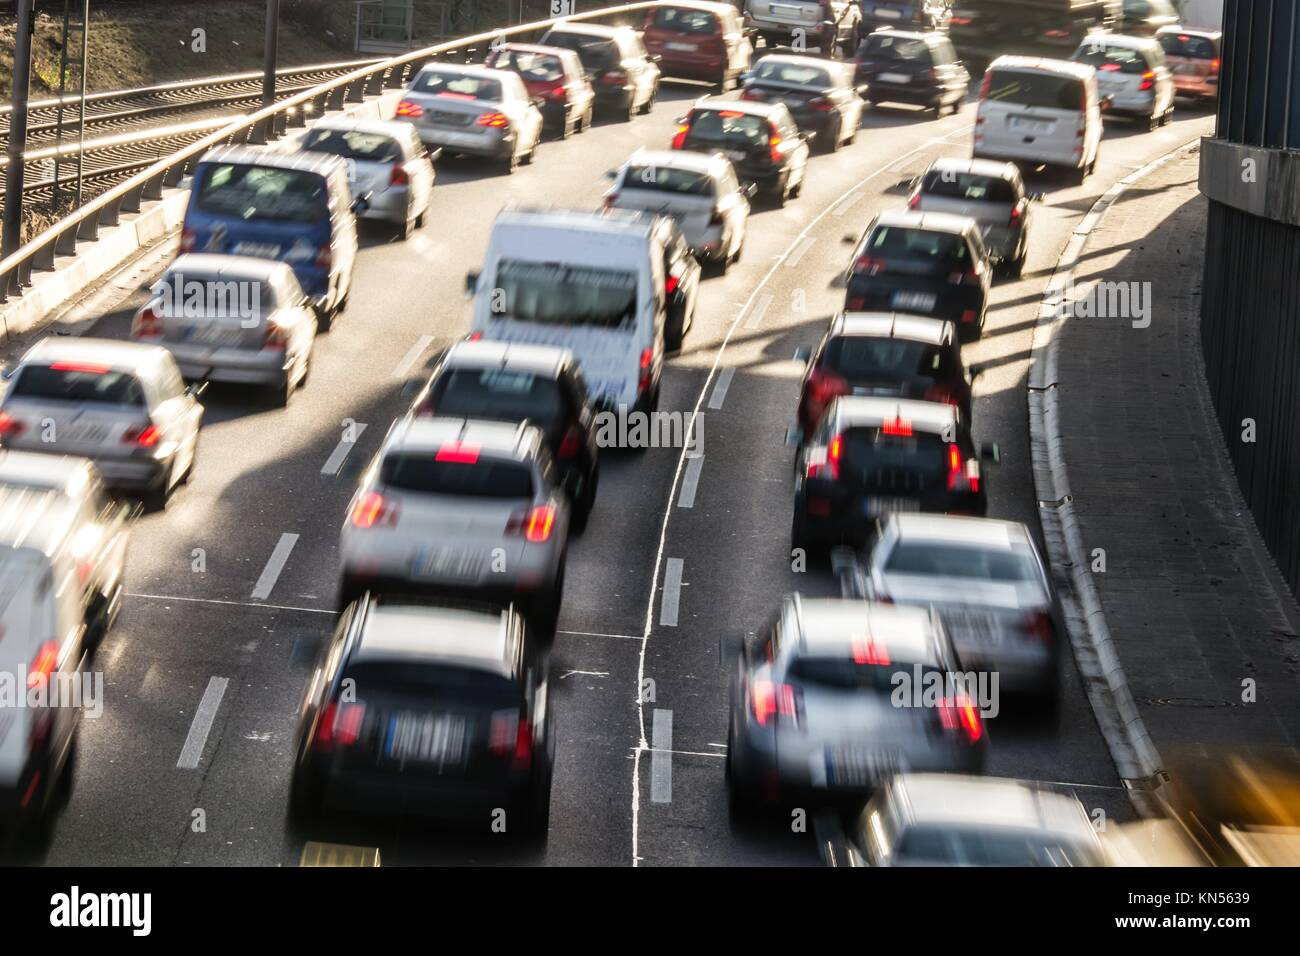 cars in a congestion on highway. - Stock Image